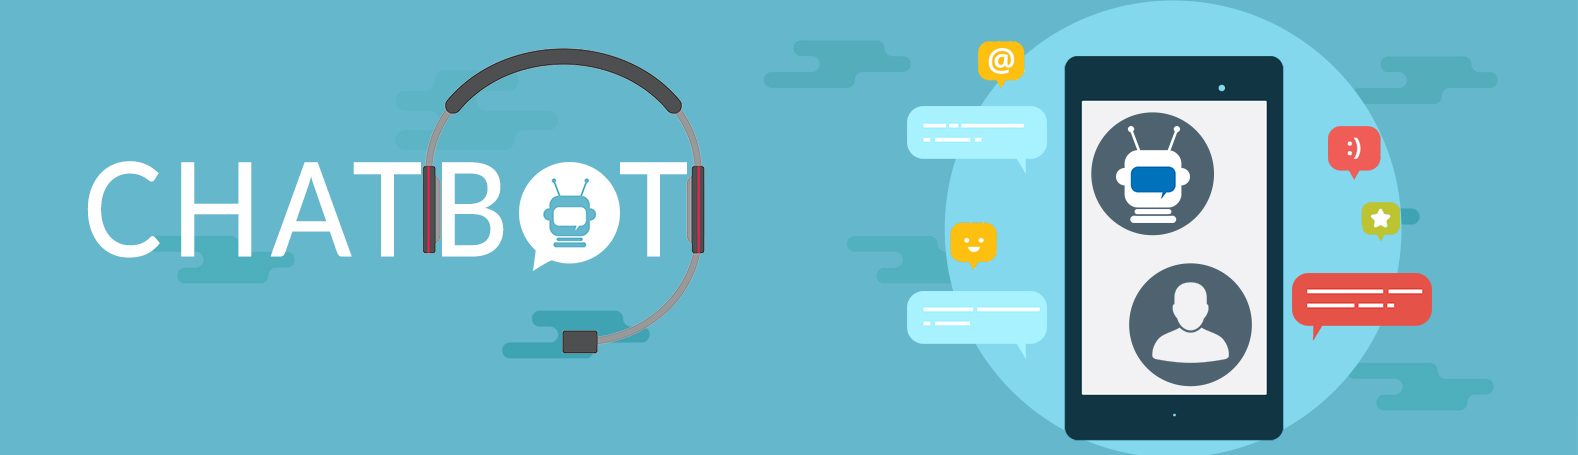 I will develop an intelligent chatbot for a website and social networking sites